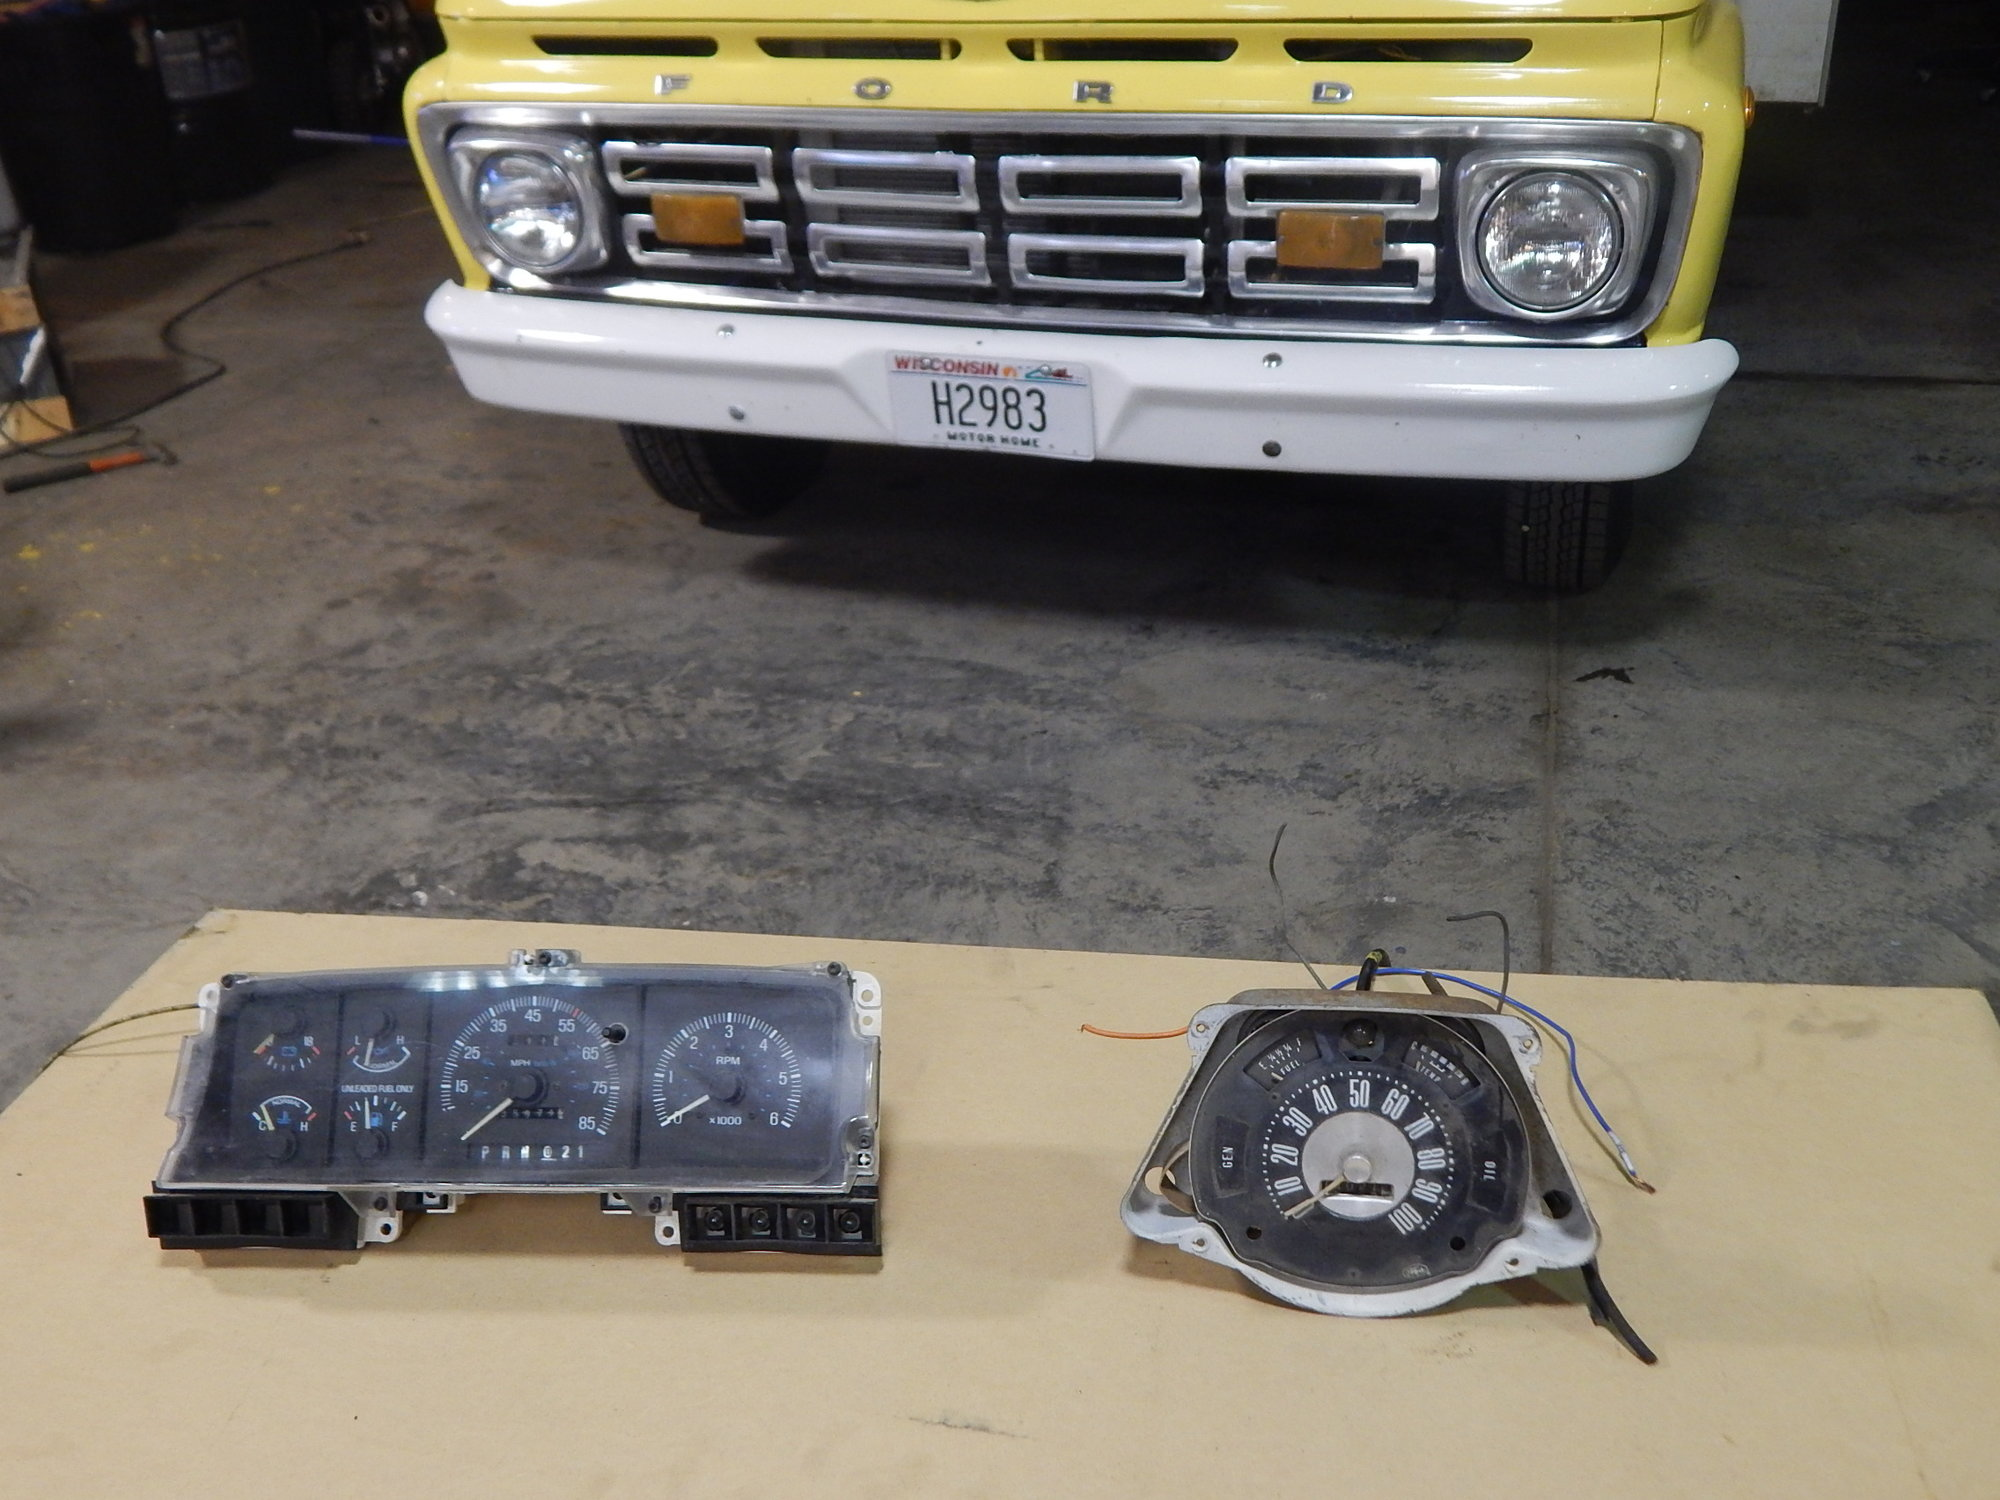 Speedometer Cable From 1989 F250 To 1964 Ford Truck F 250 Dash The On Left And Right